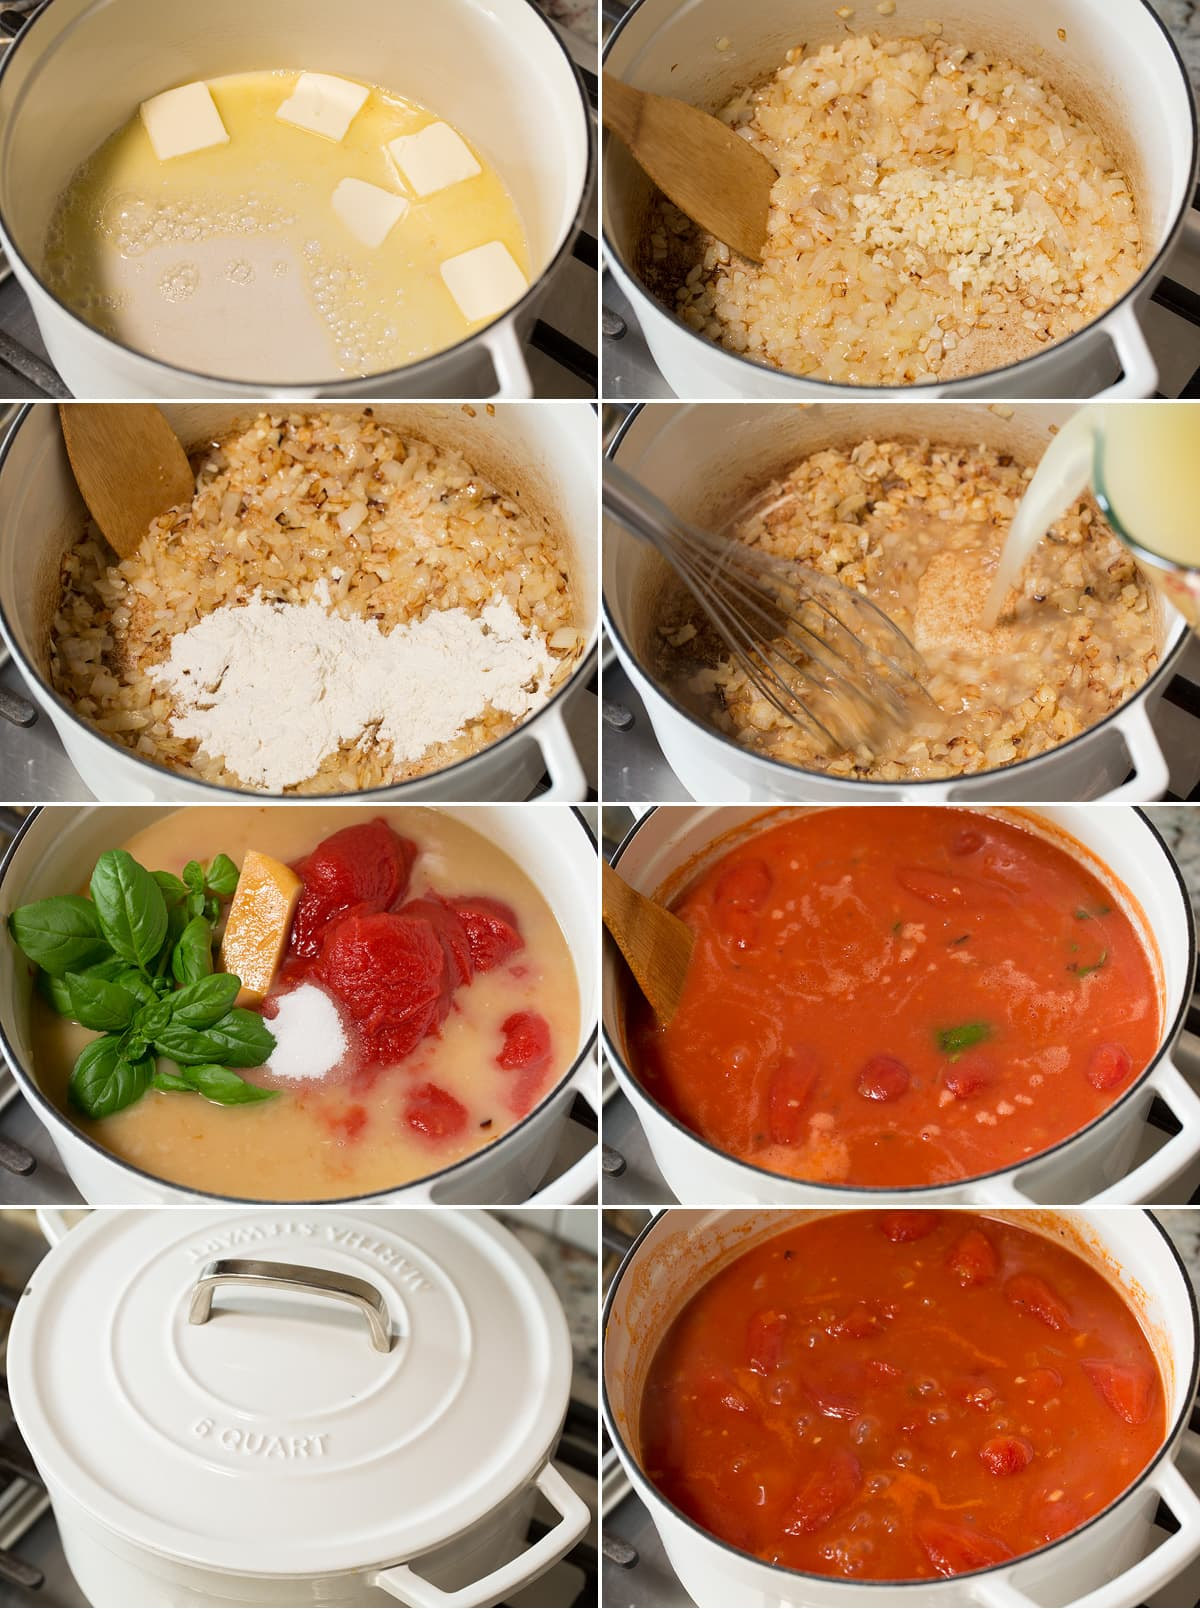 Collage of eight images showing steps to making tomato soup in a large pot on the stovetop. Shows sautéing onions, garlic, flour in butter and adding tomatoes, broth and seasonings. Then simmering.